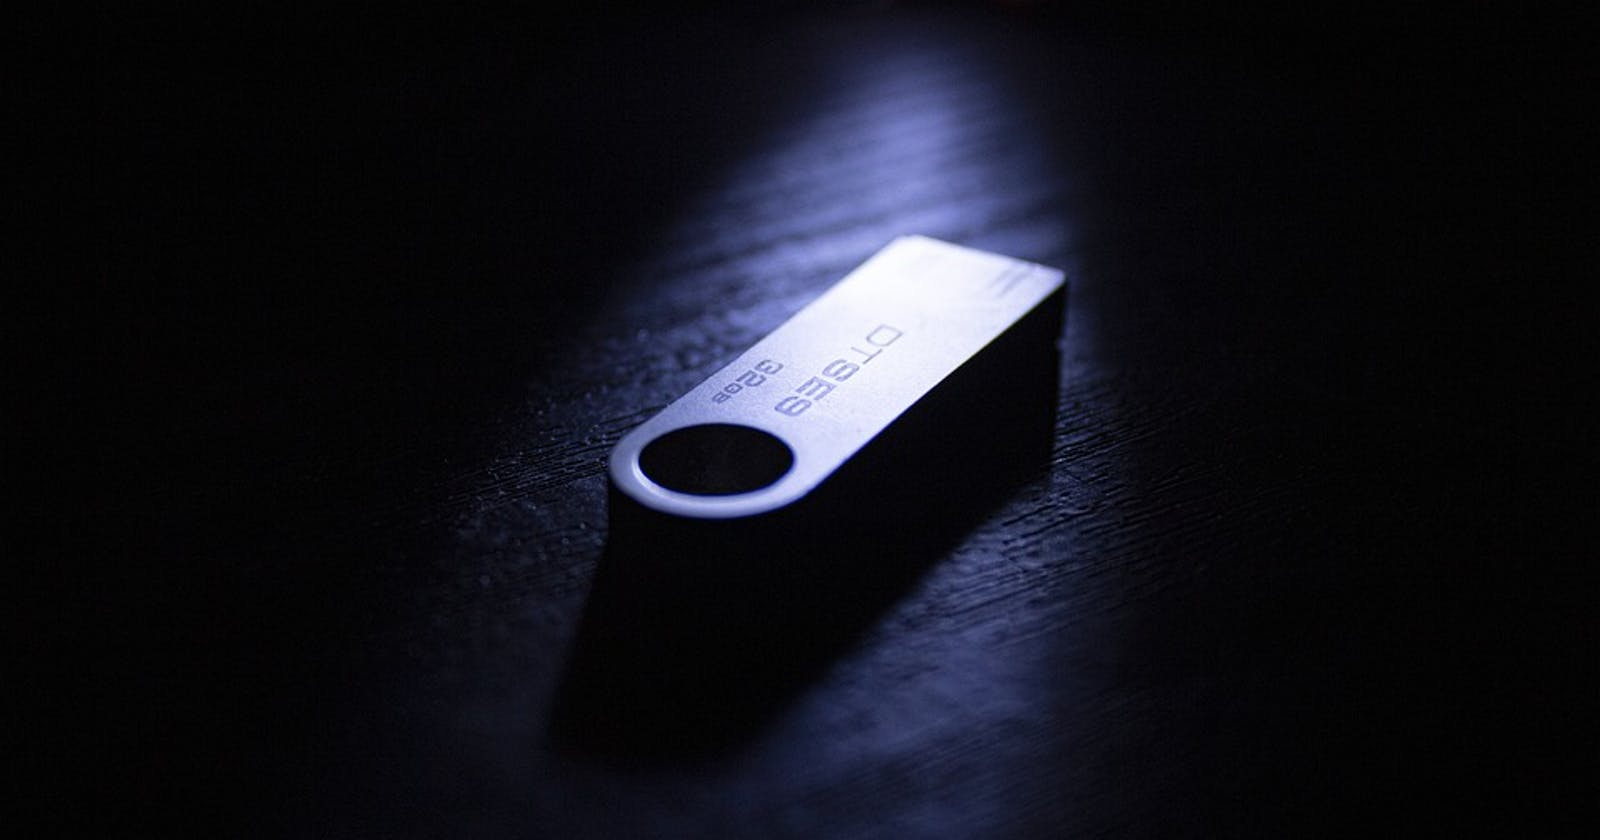 A guide using sshfs for Relax and Recover (ReaR): bare-metal server backup & restore (or migrate) for Linux